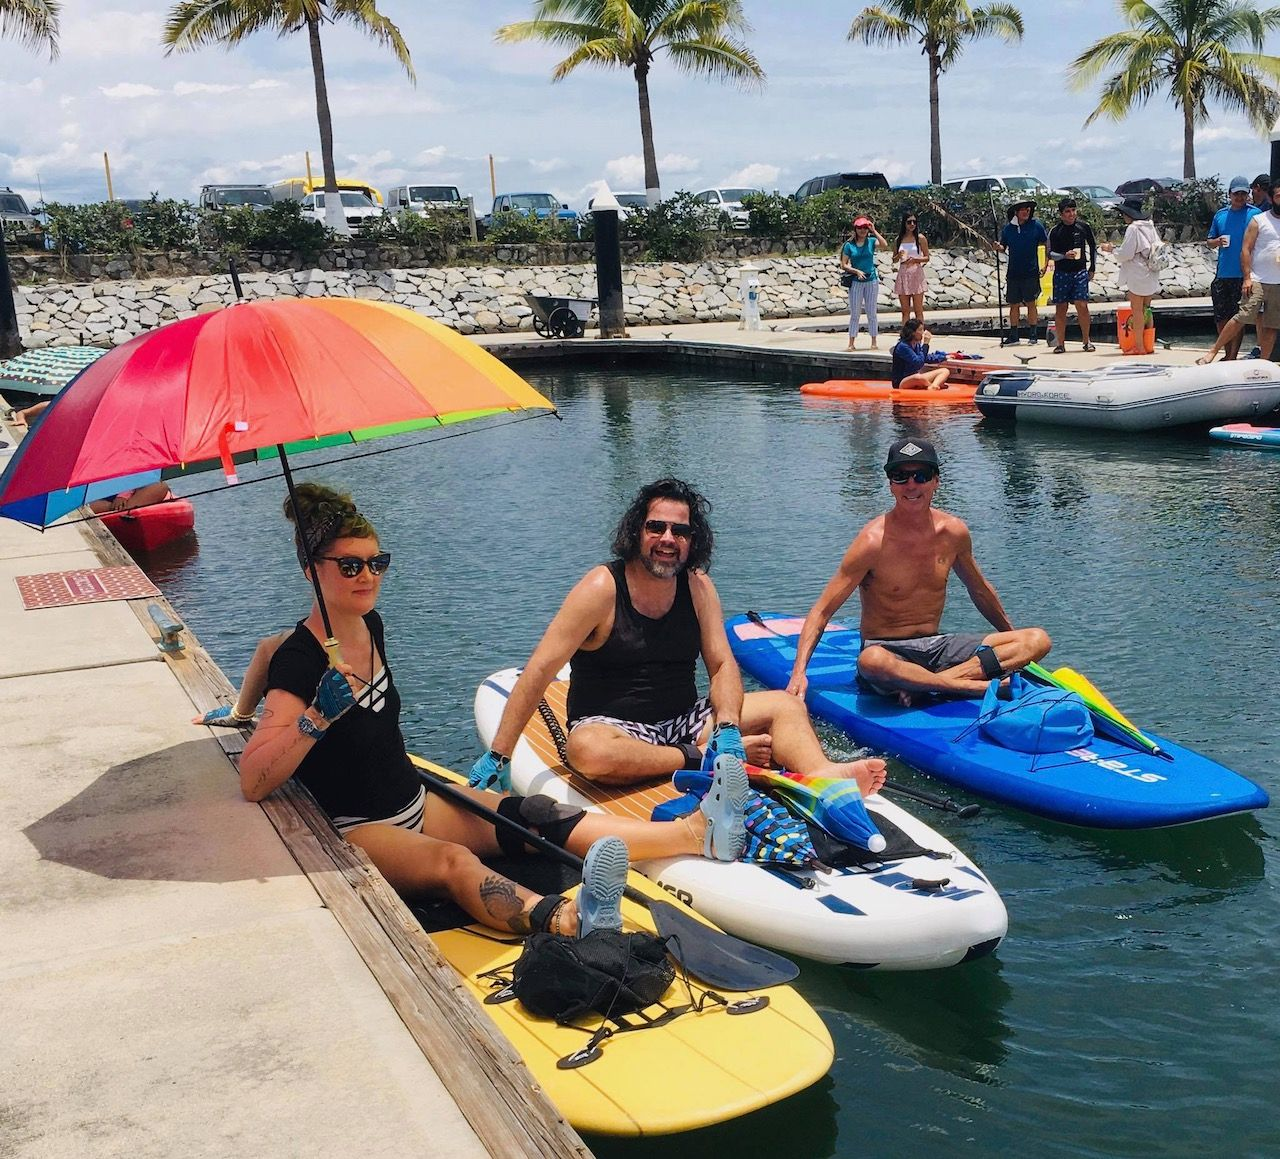 Three people sitting on a row of paddleboards floating in water. They are wearing sunglasses and smiling at the camera. One person is holding a rainbow colors umbrella.